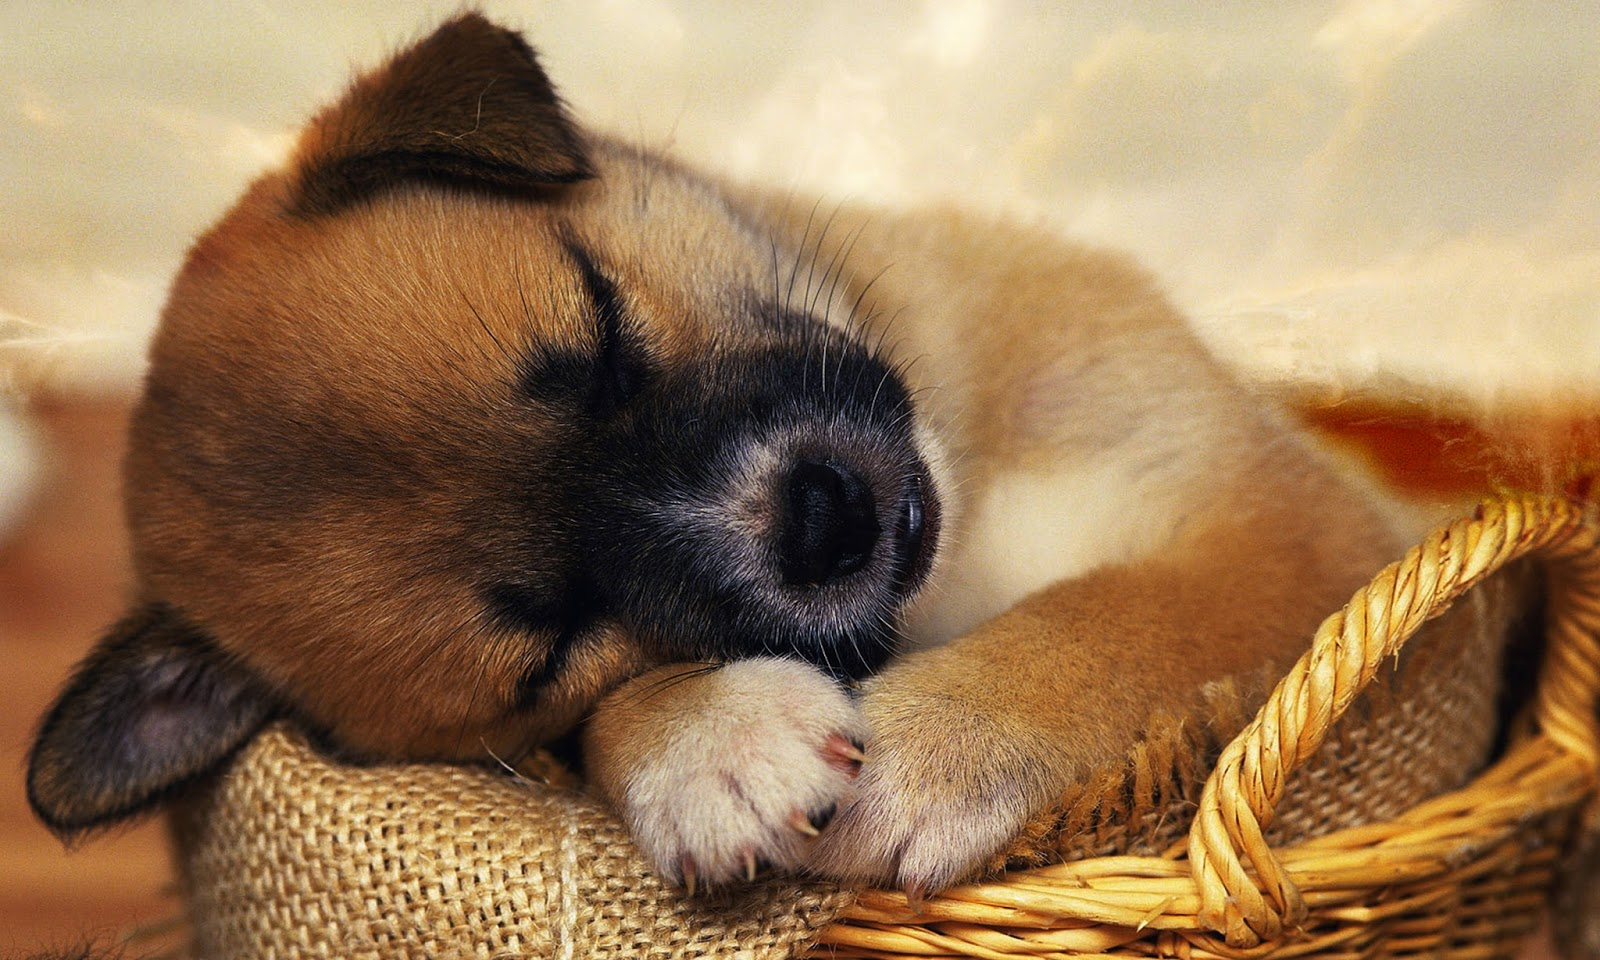 Cute Puppies Wallpaper 1080p Puppy Photography 1080p Wallpapers